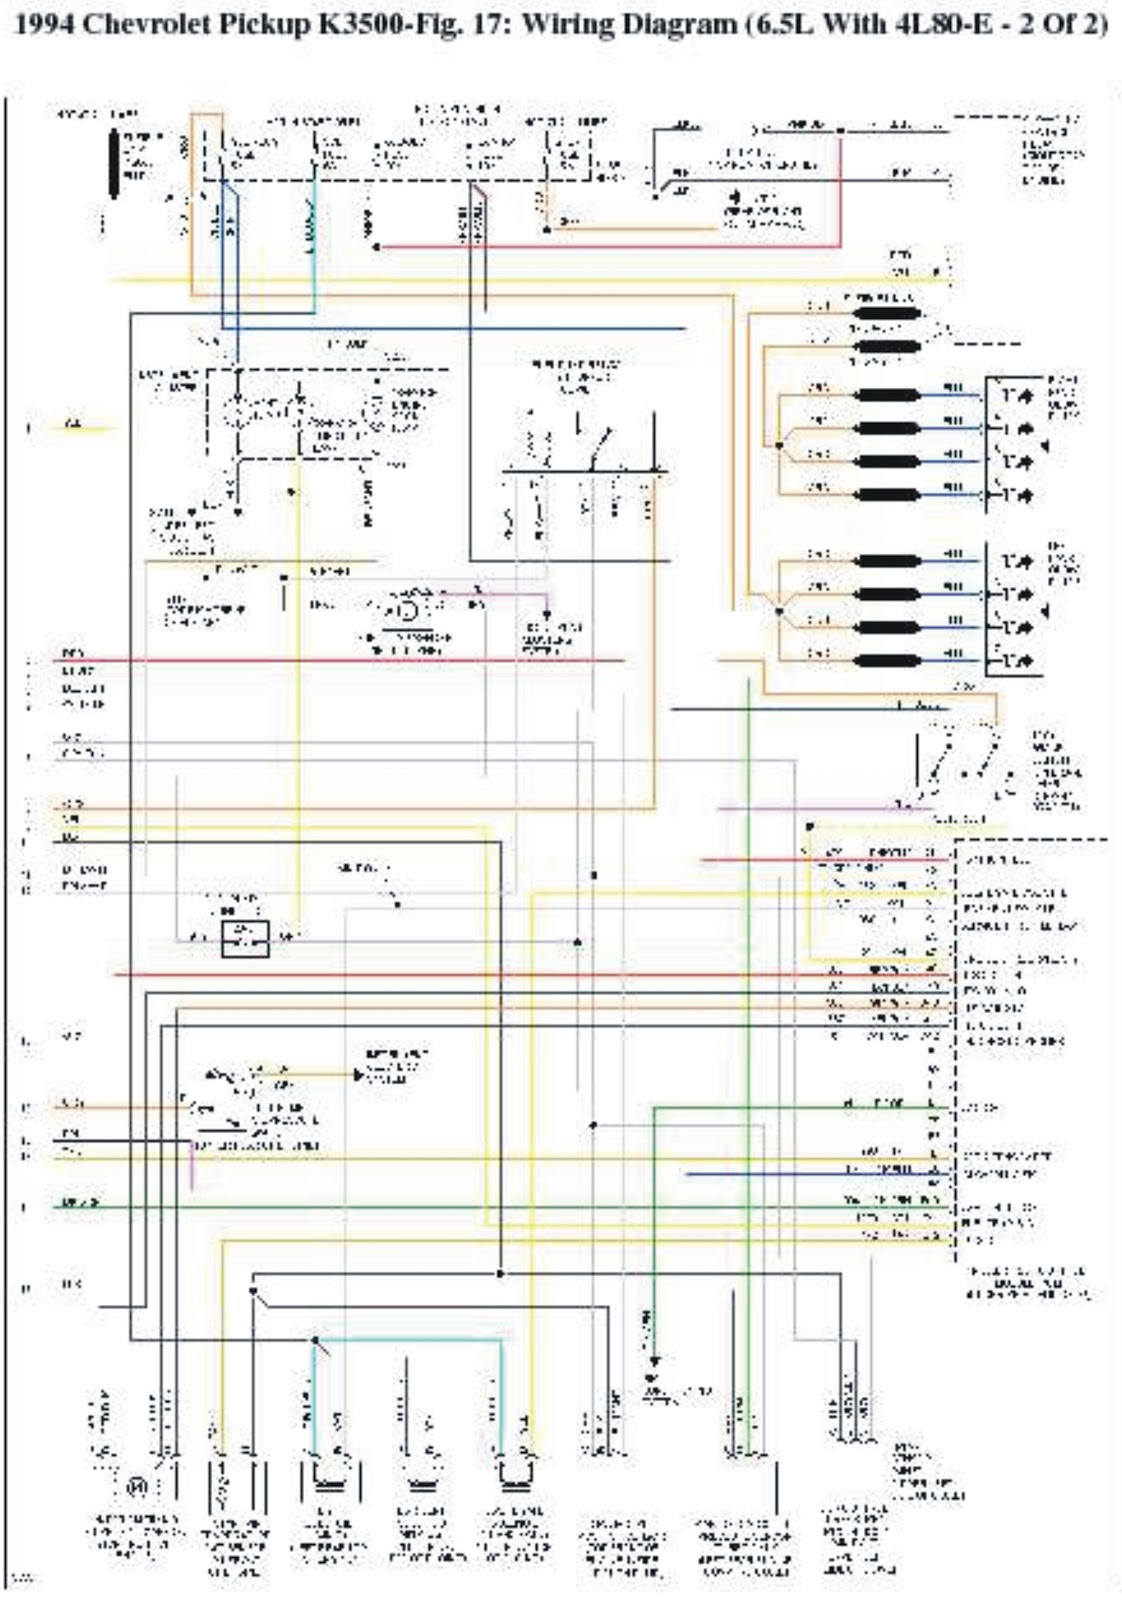 Chevy Wiring Harness Diagram 2008 Chevrolet Malibu 3500 Diagrams Get Free Image About